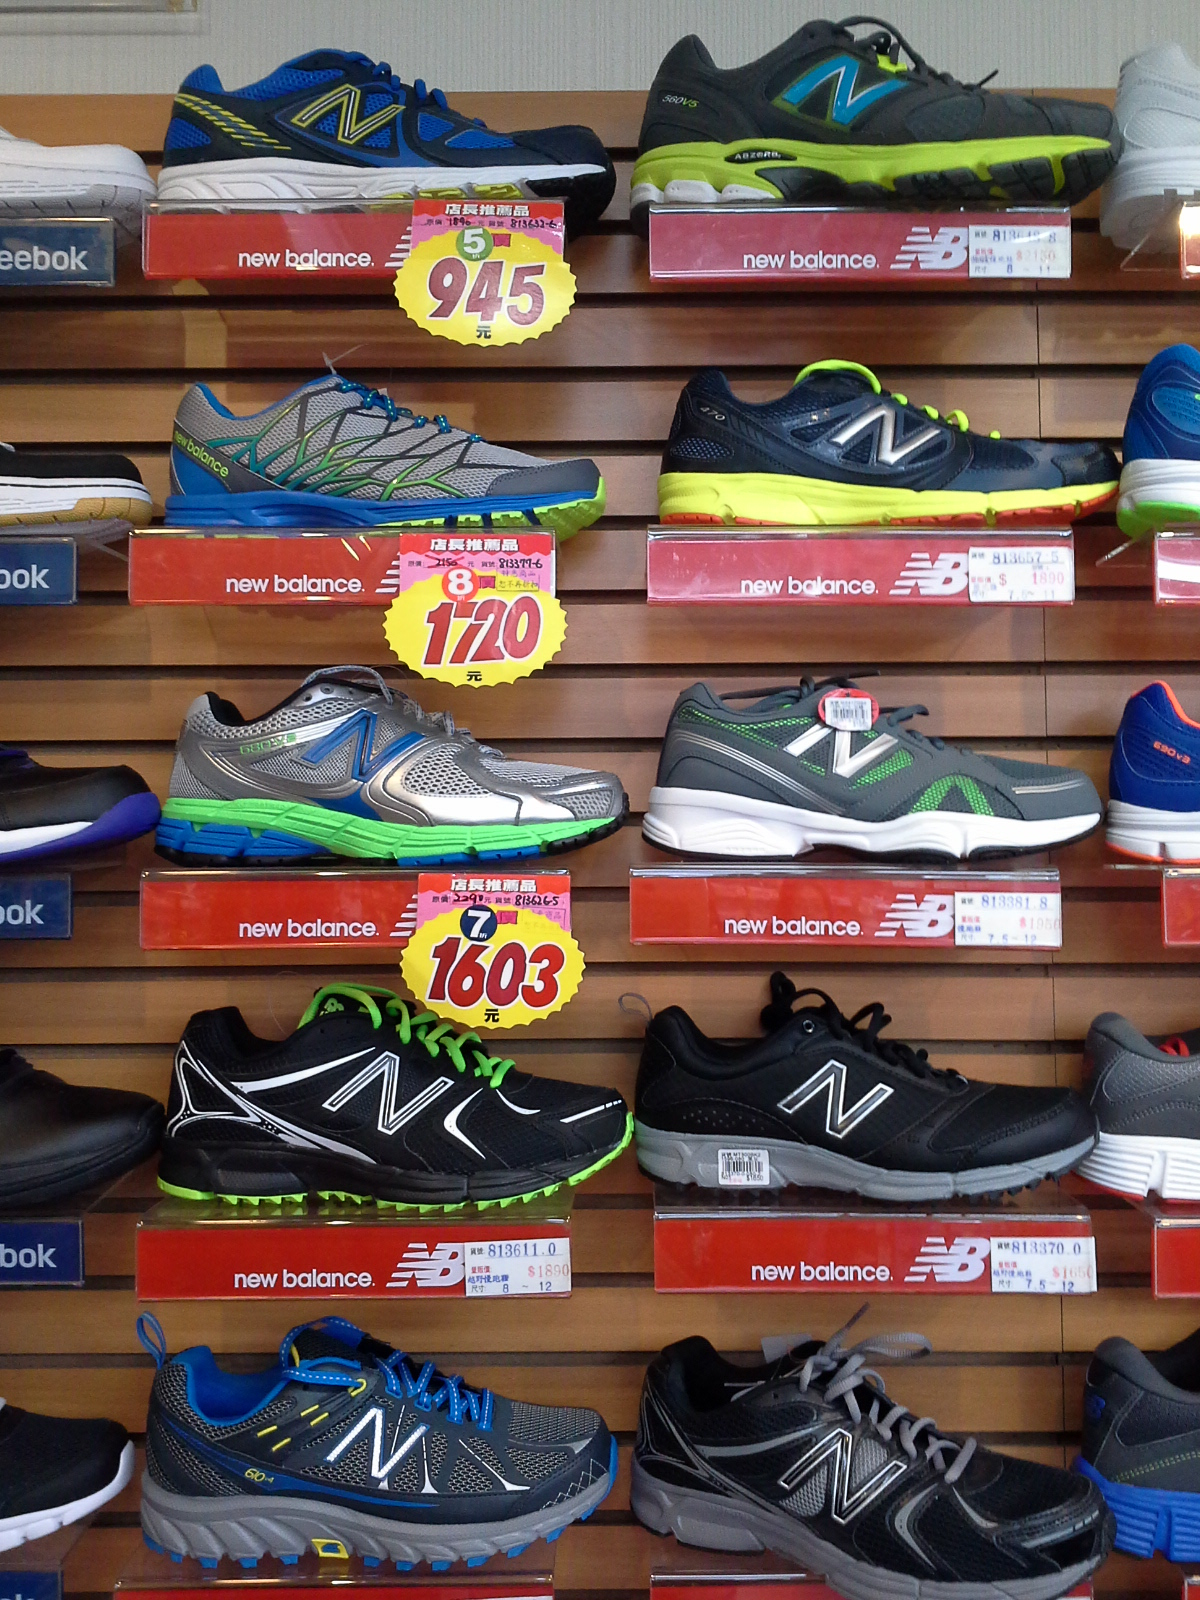 Nike New Balance Shoes And Magenta White